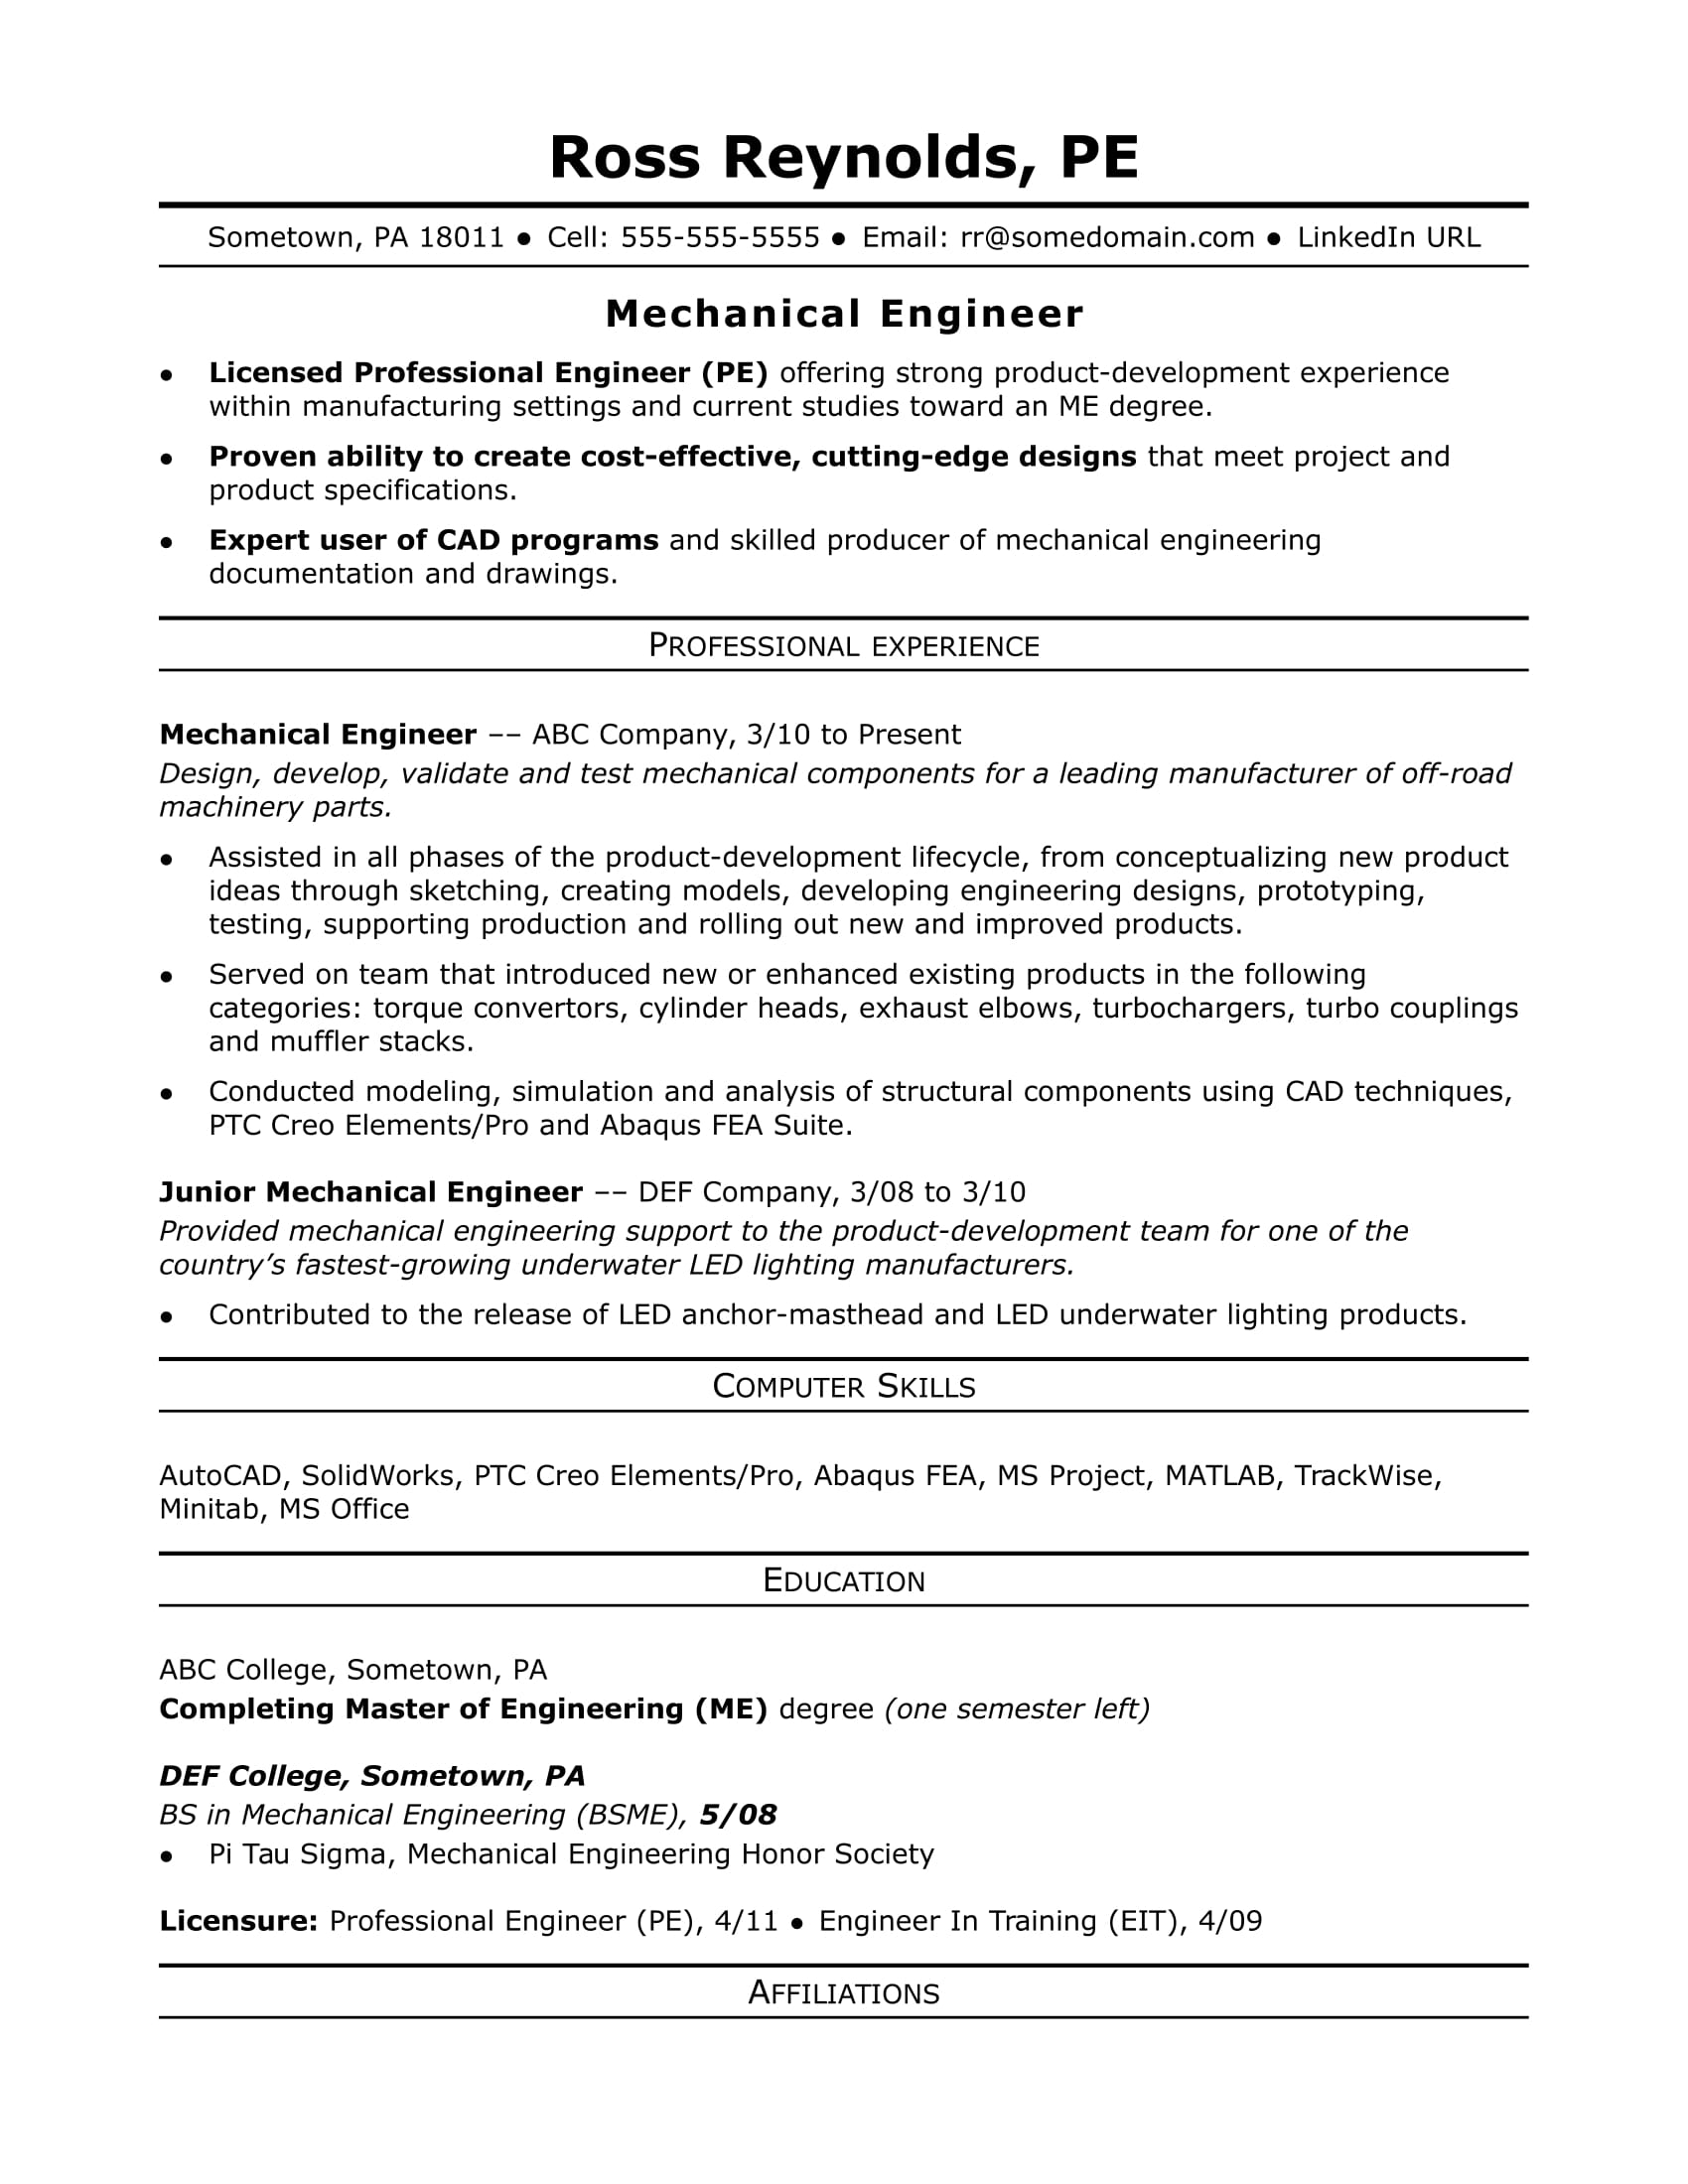 mechanical engineering resume template experienced resume samples mechanical engineering 23599 | mechanical engineer midlevel